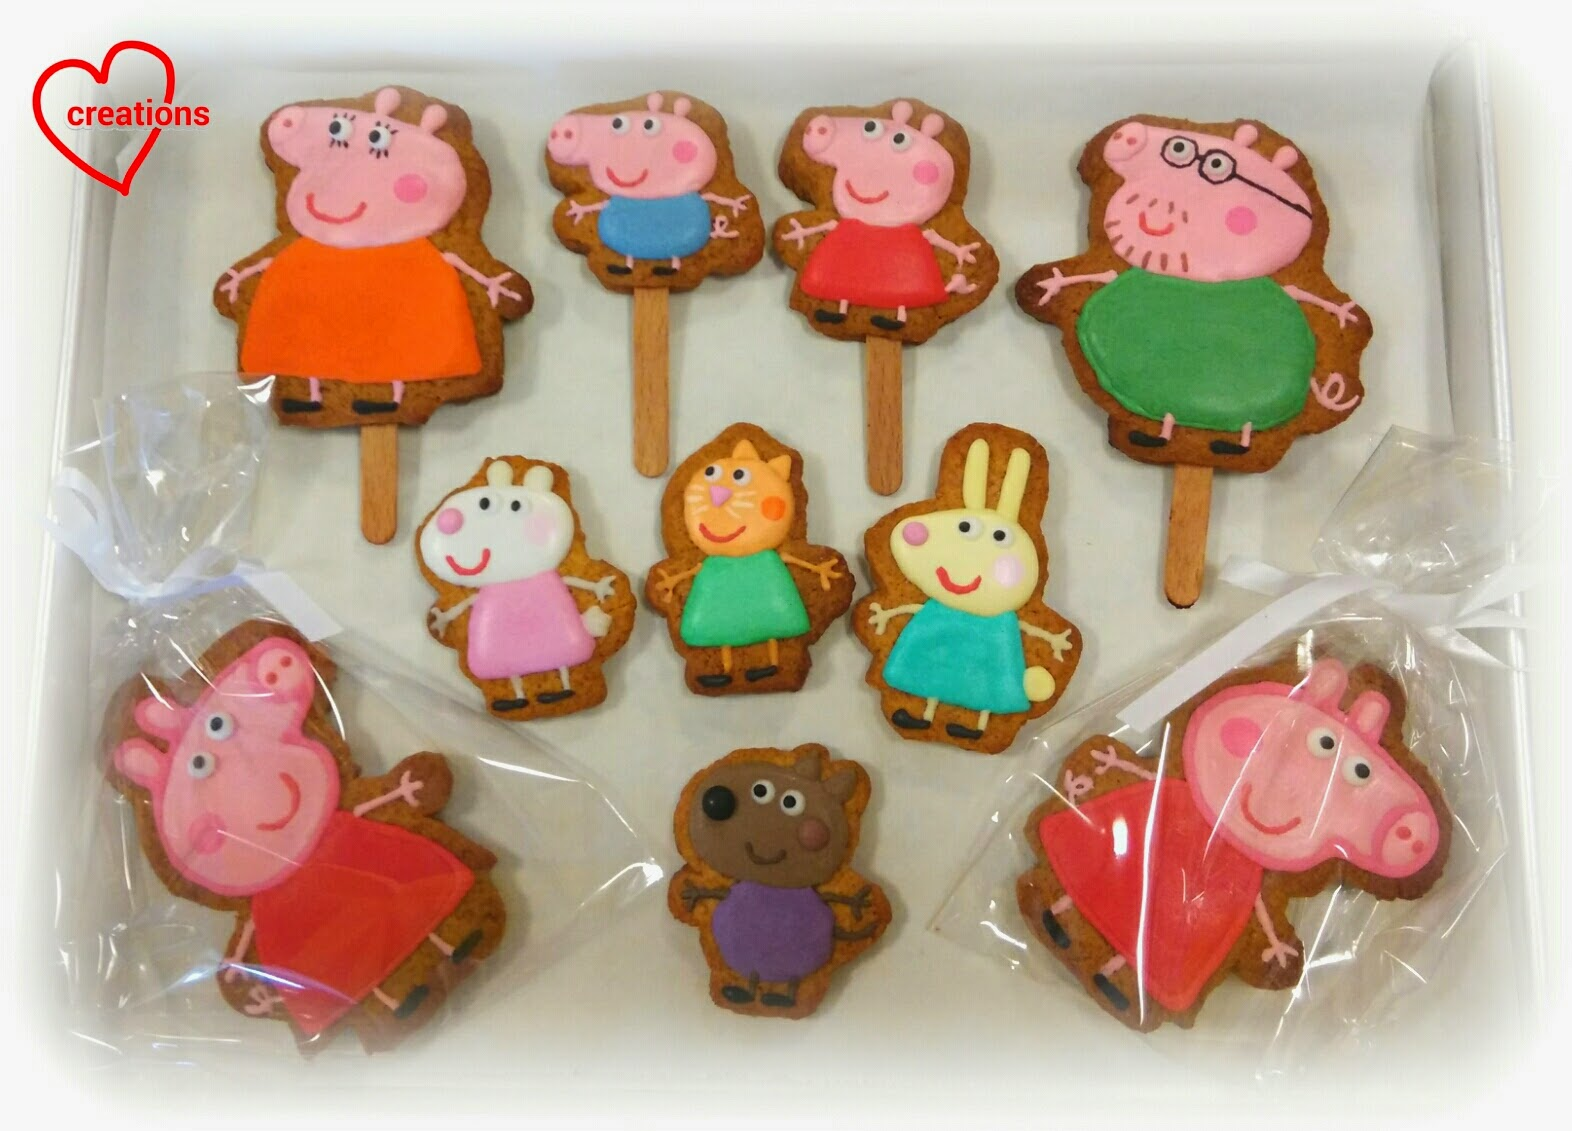 Loving Creations For You Peppa Pig Family Friends Brown Sugar Cookies